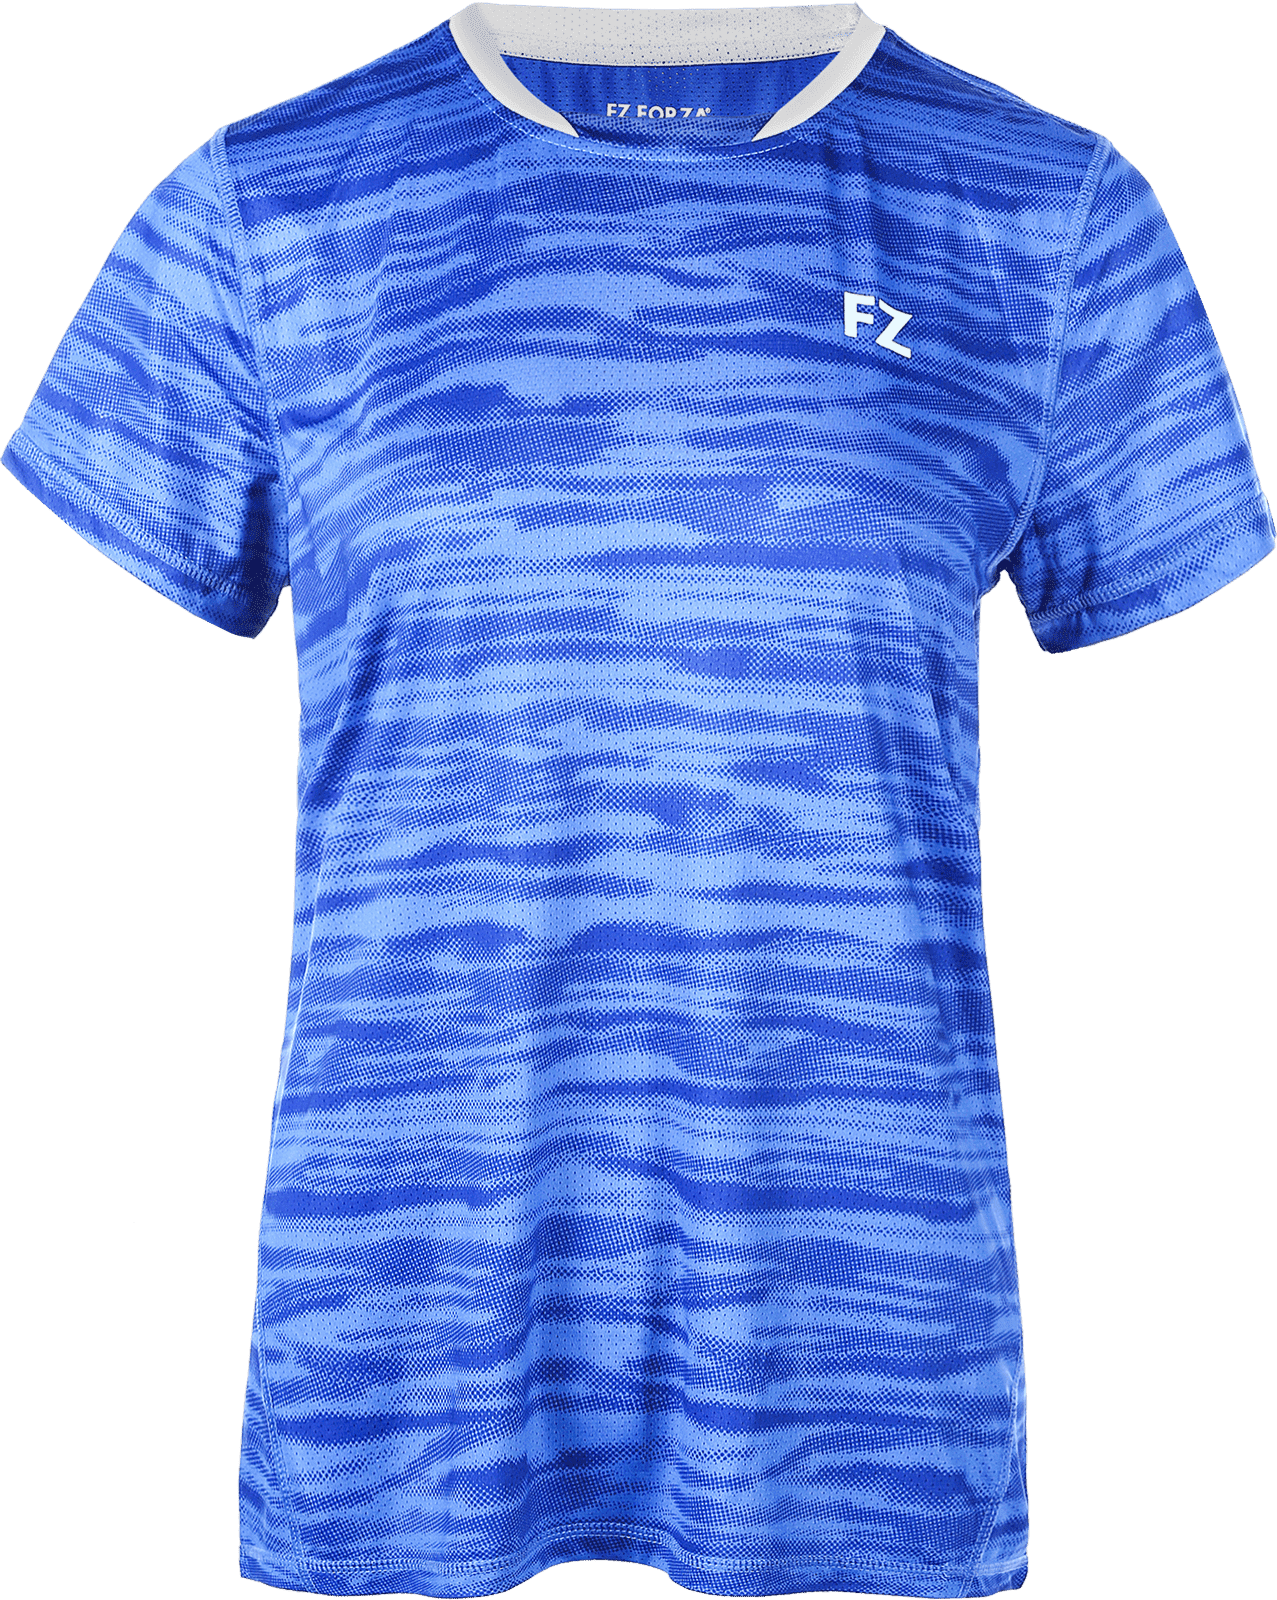 Forza Malay W S/S Tee, 2081 Blue Aster